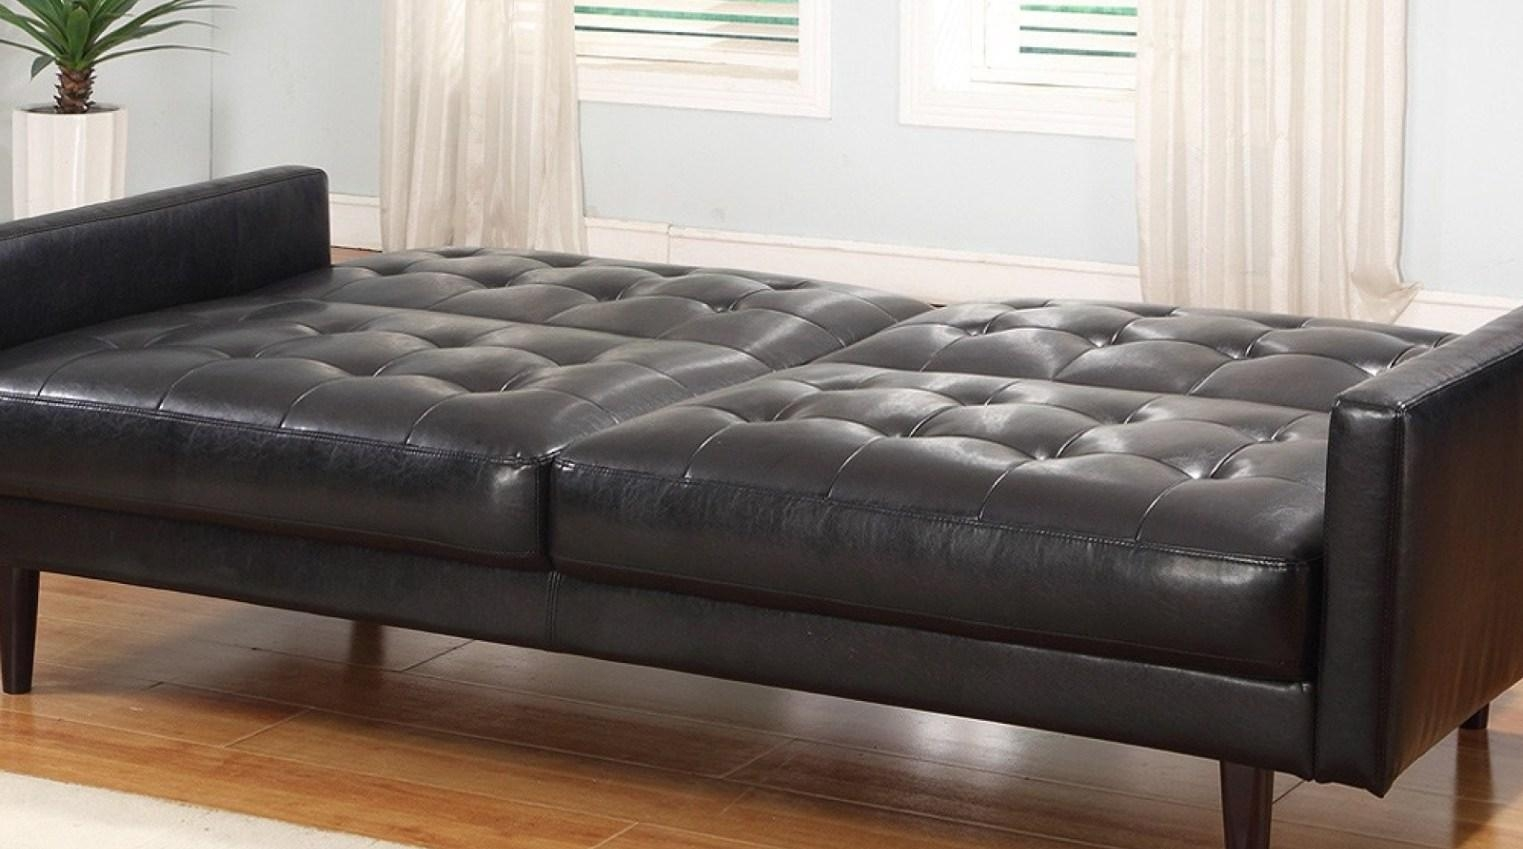 Sofa : Chesterfield Sofa History Goingtheextramile Cheap With Regard To Classic English Sofas (Image 11 of 21)